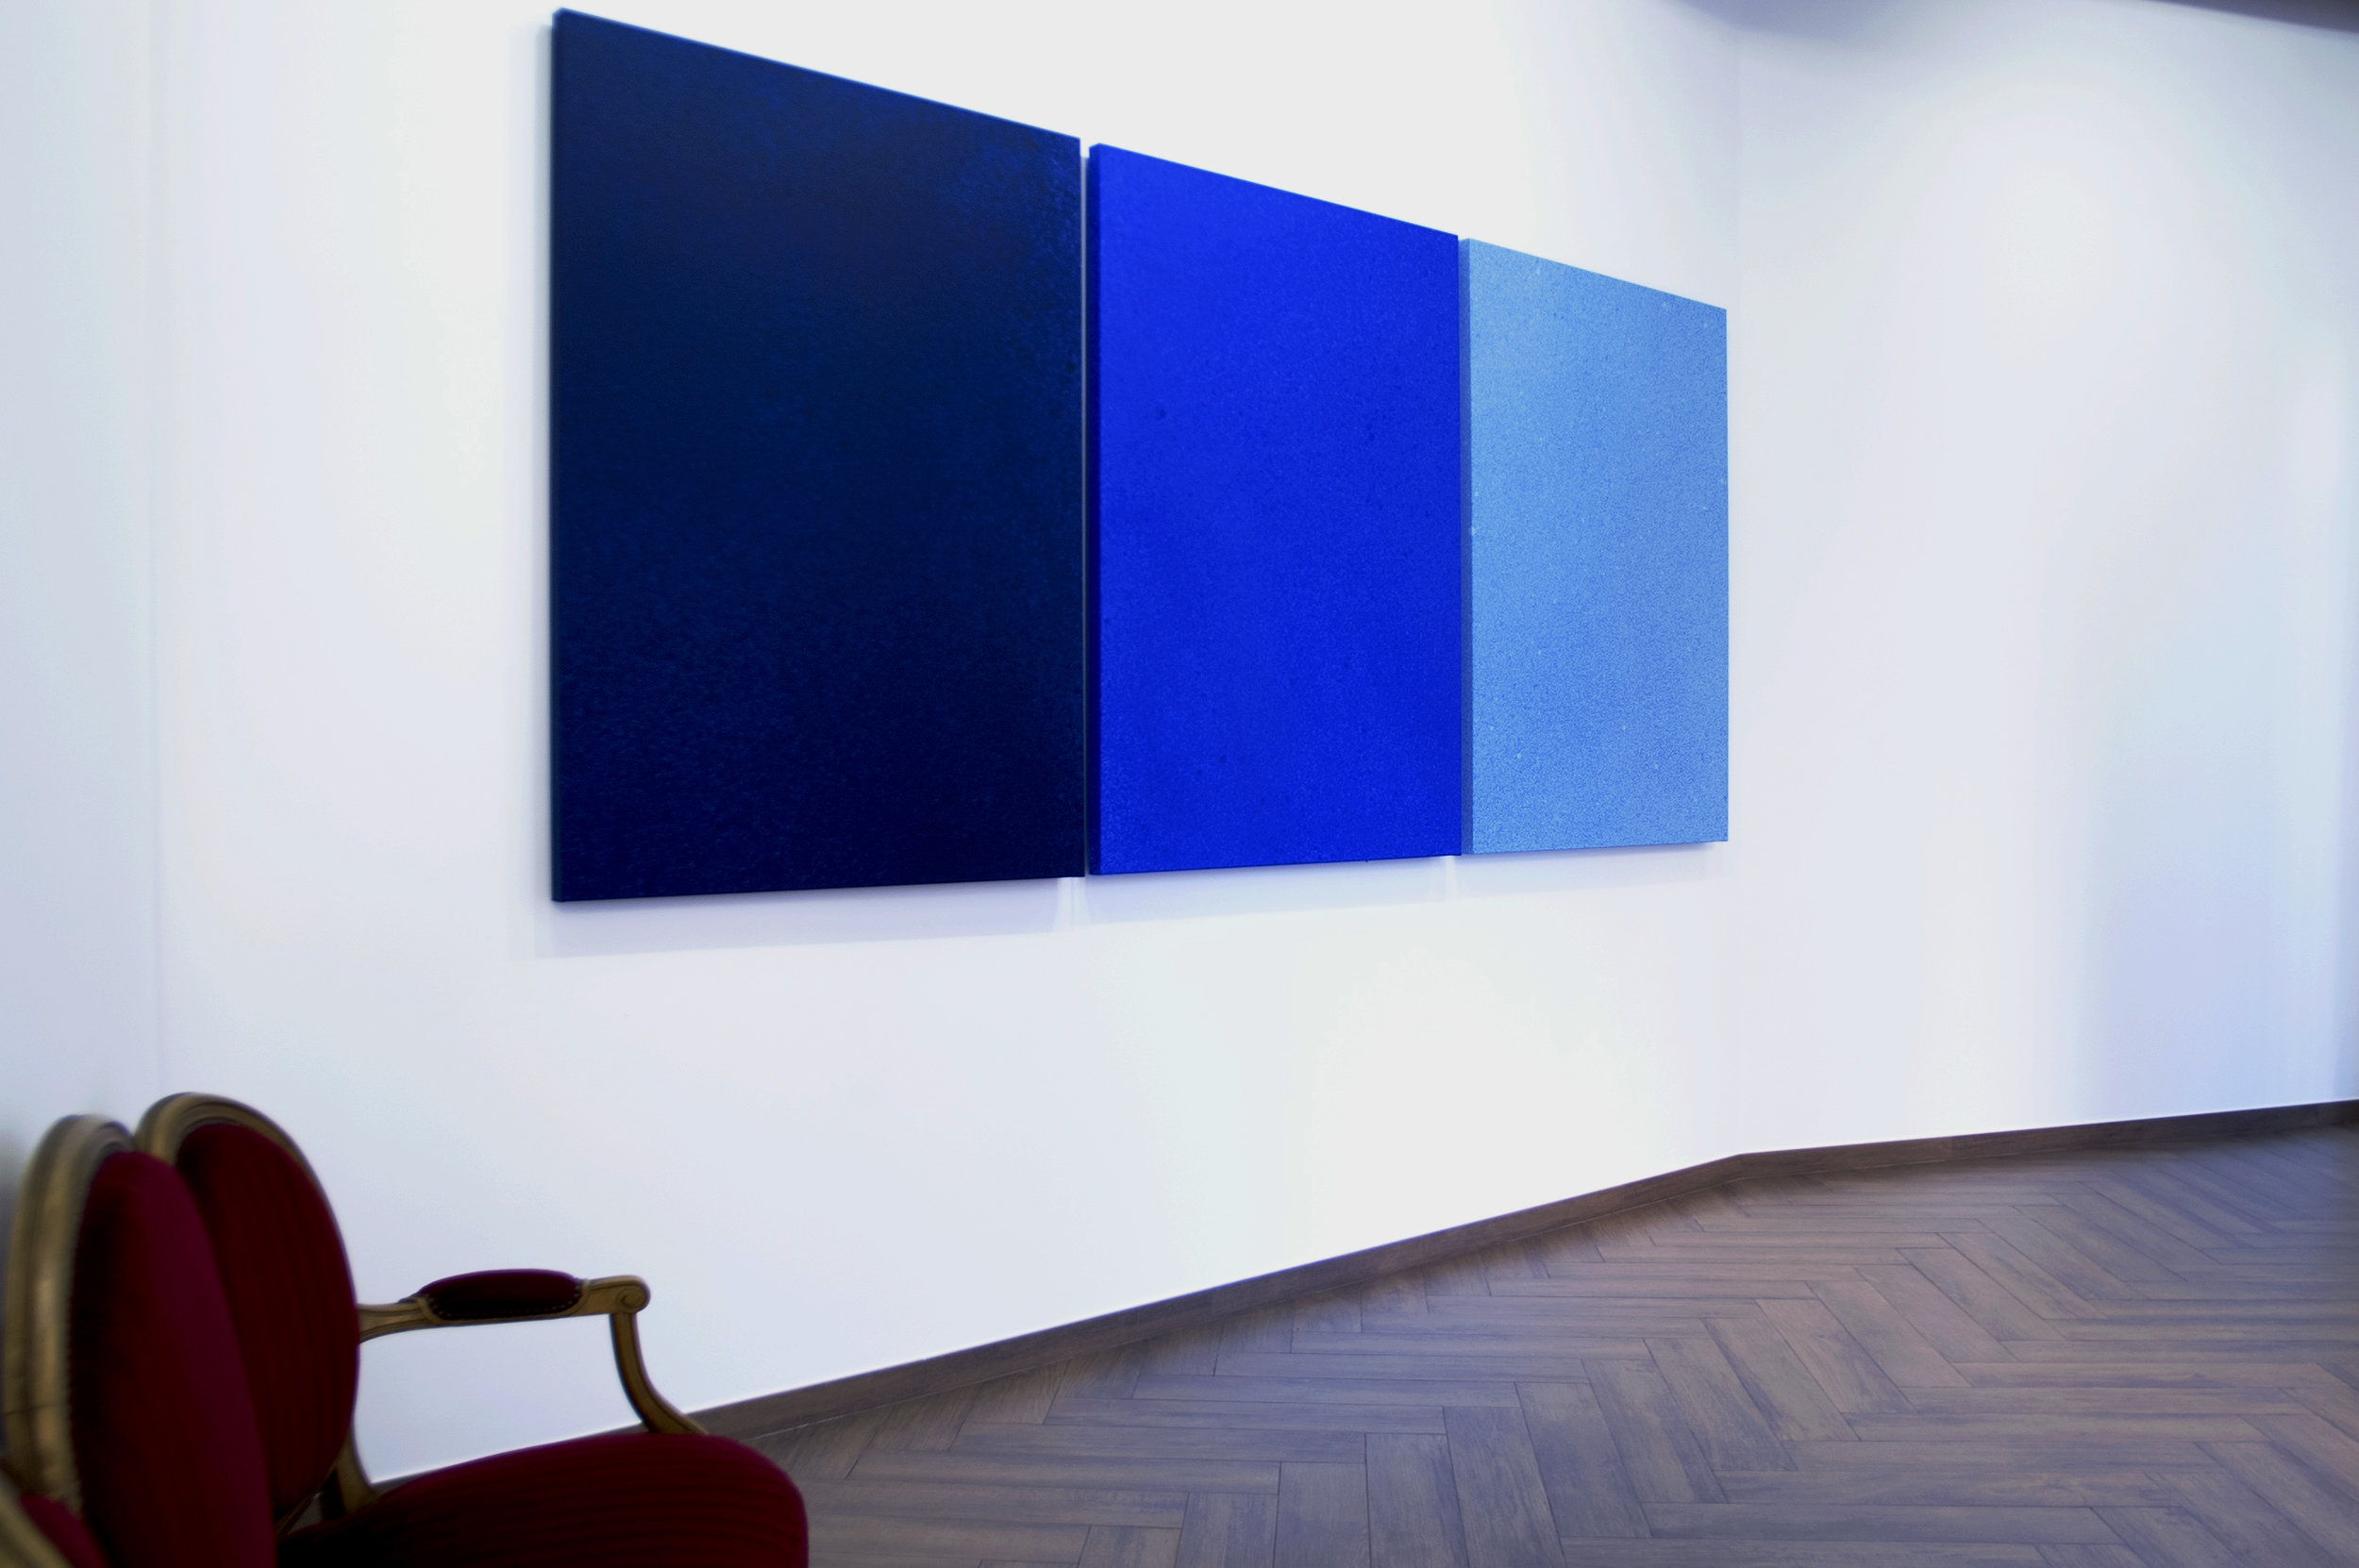 Skoya Assémat-Tessandier, Le  Rêve Bleu , The Switch | Cabinet de l'Art, 2017